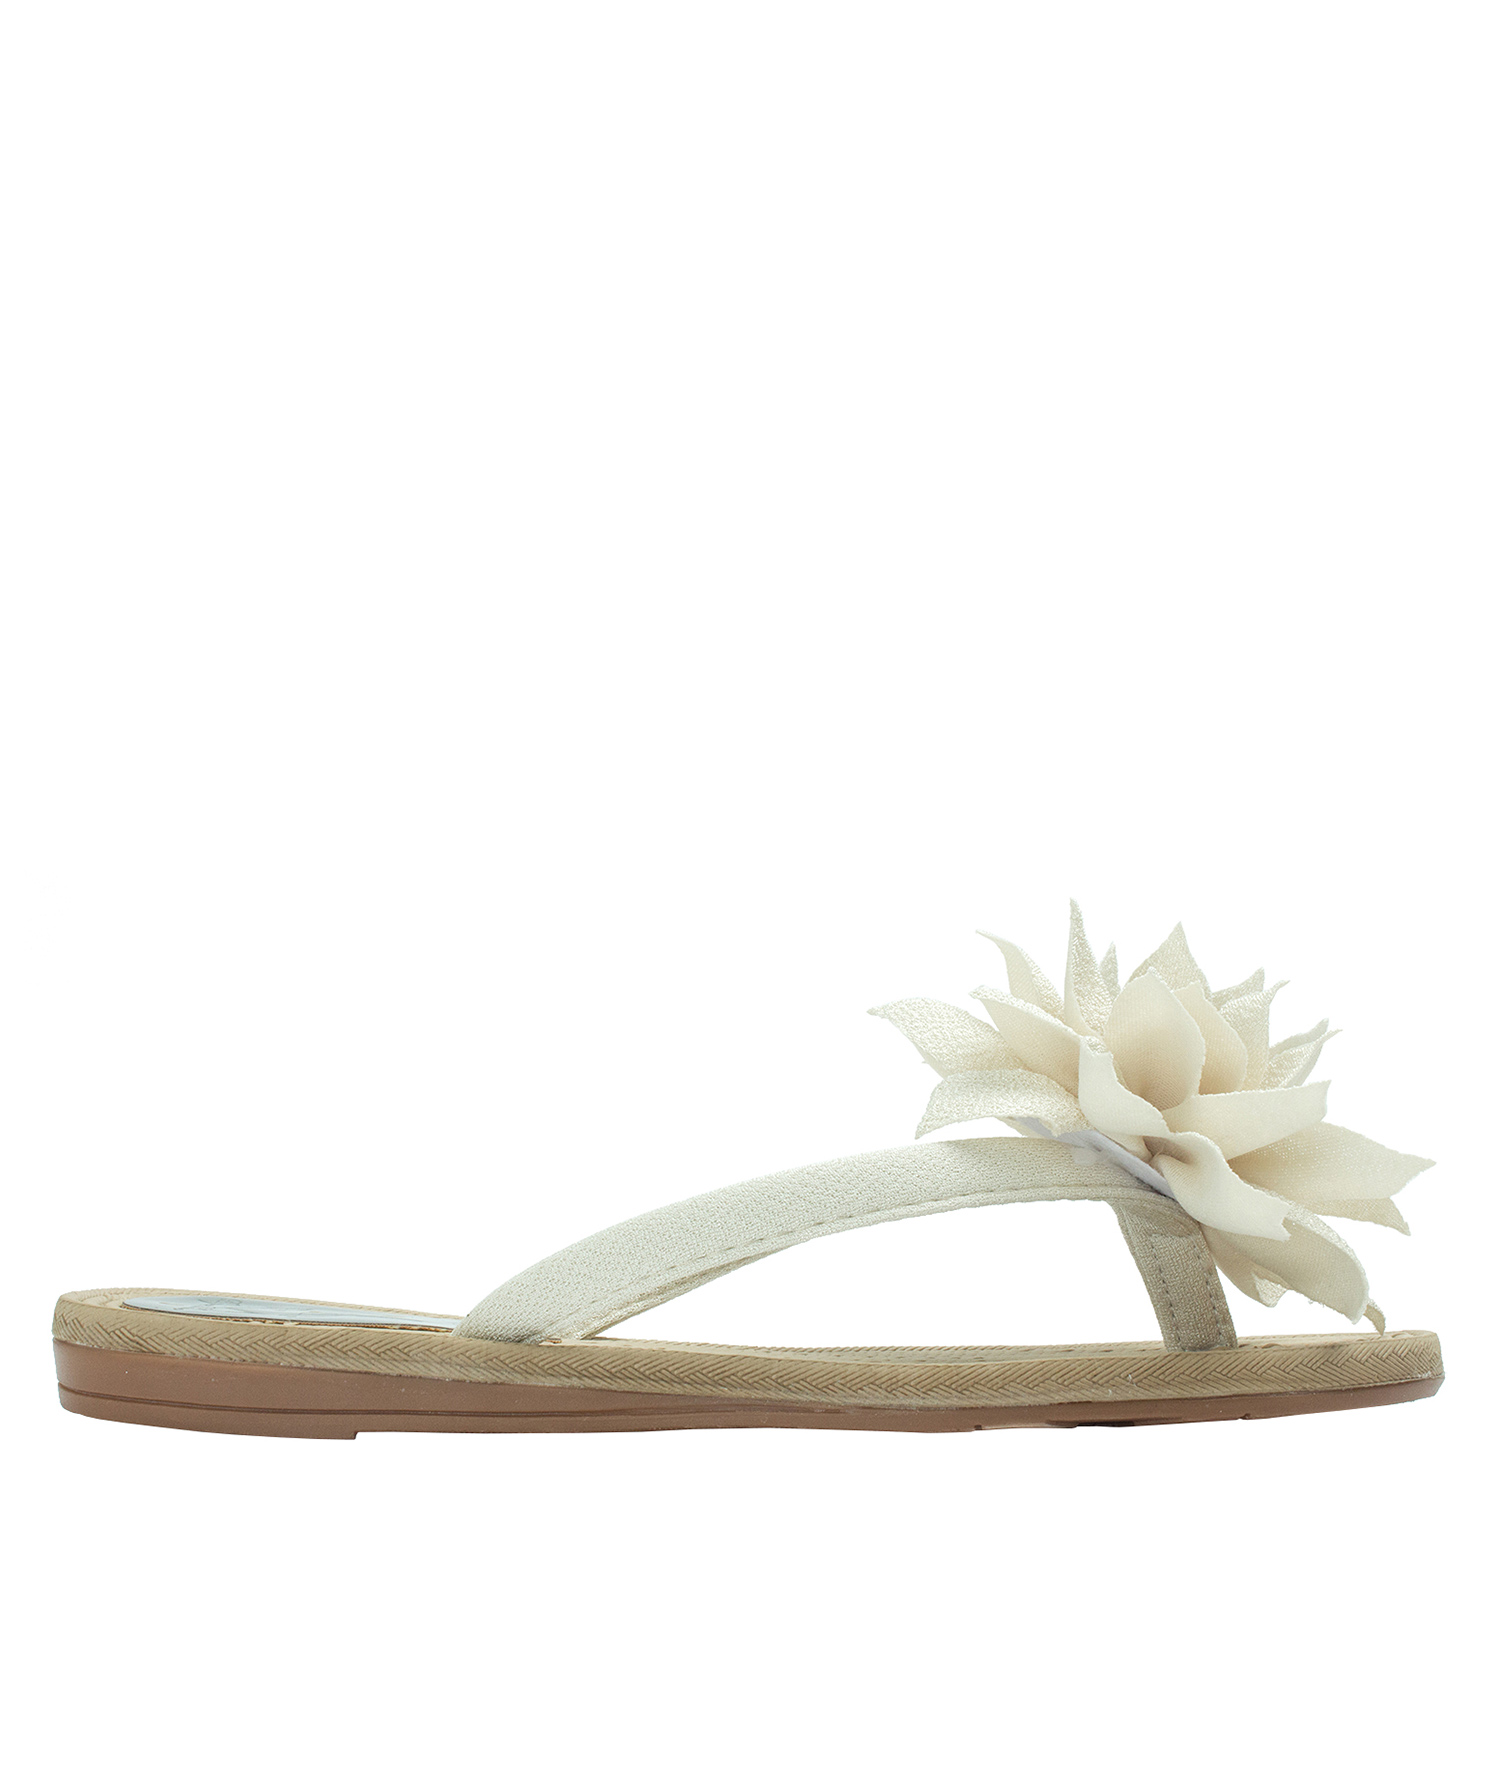 Big Flower Flip Flops Beach Sandals Annakastleshoes